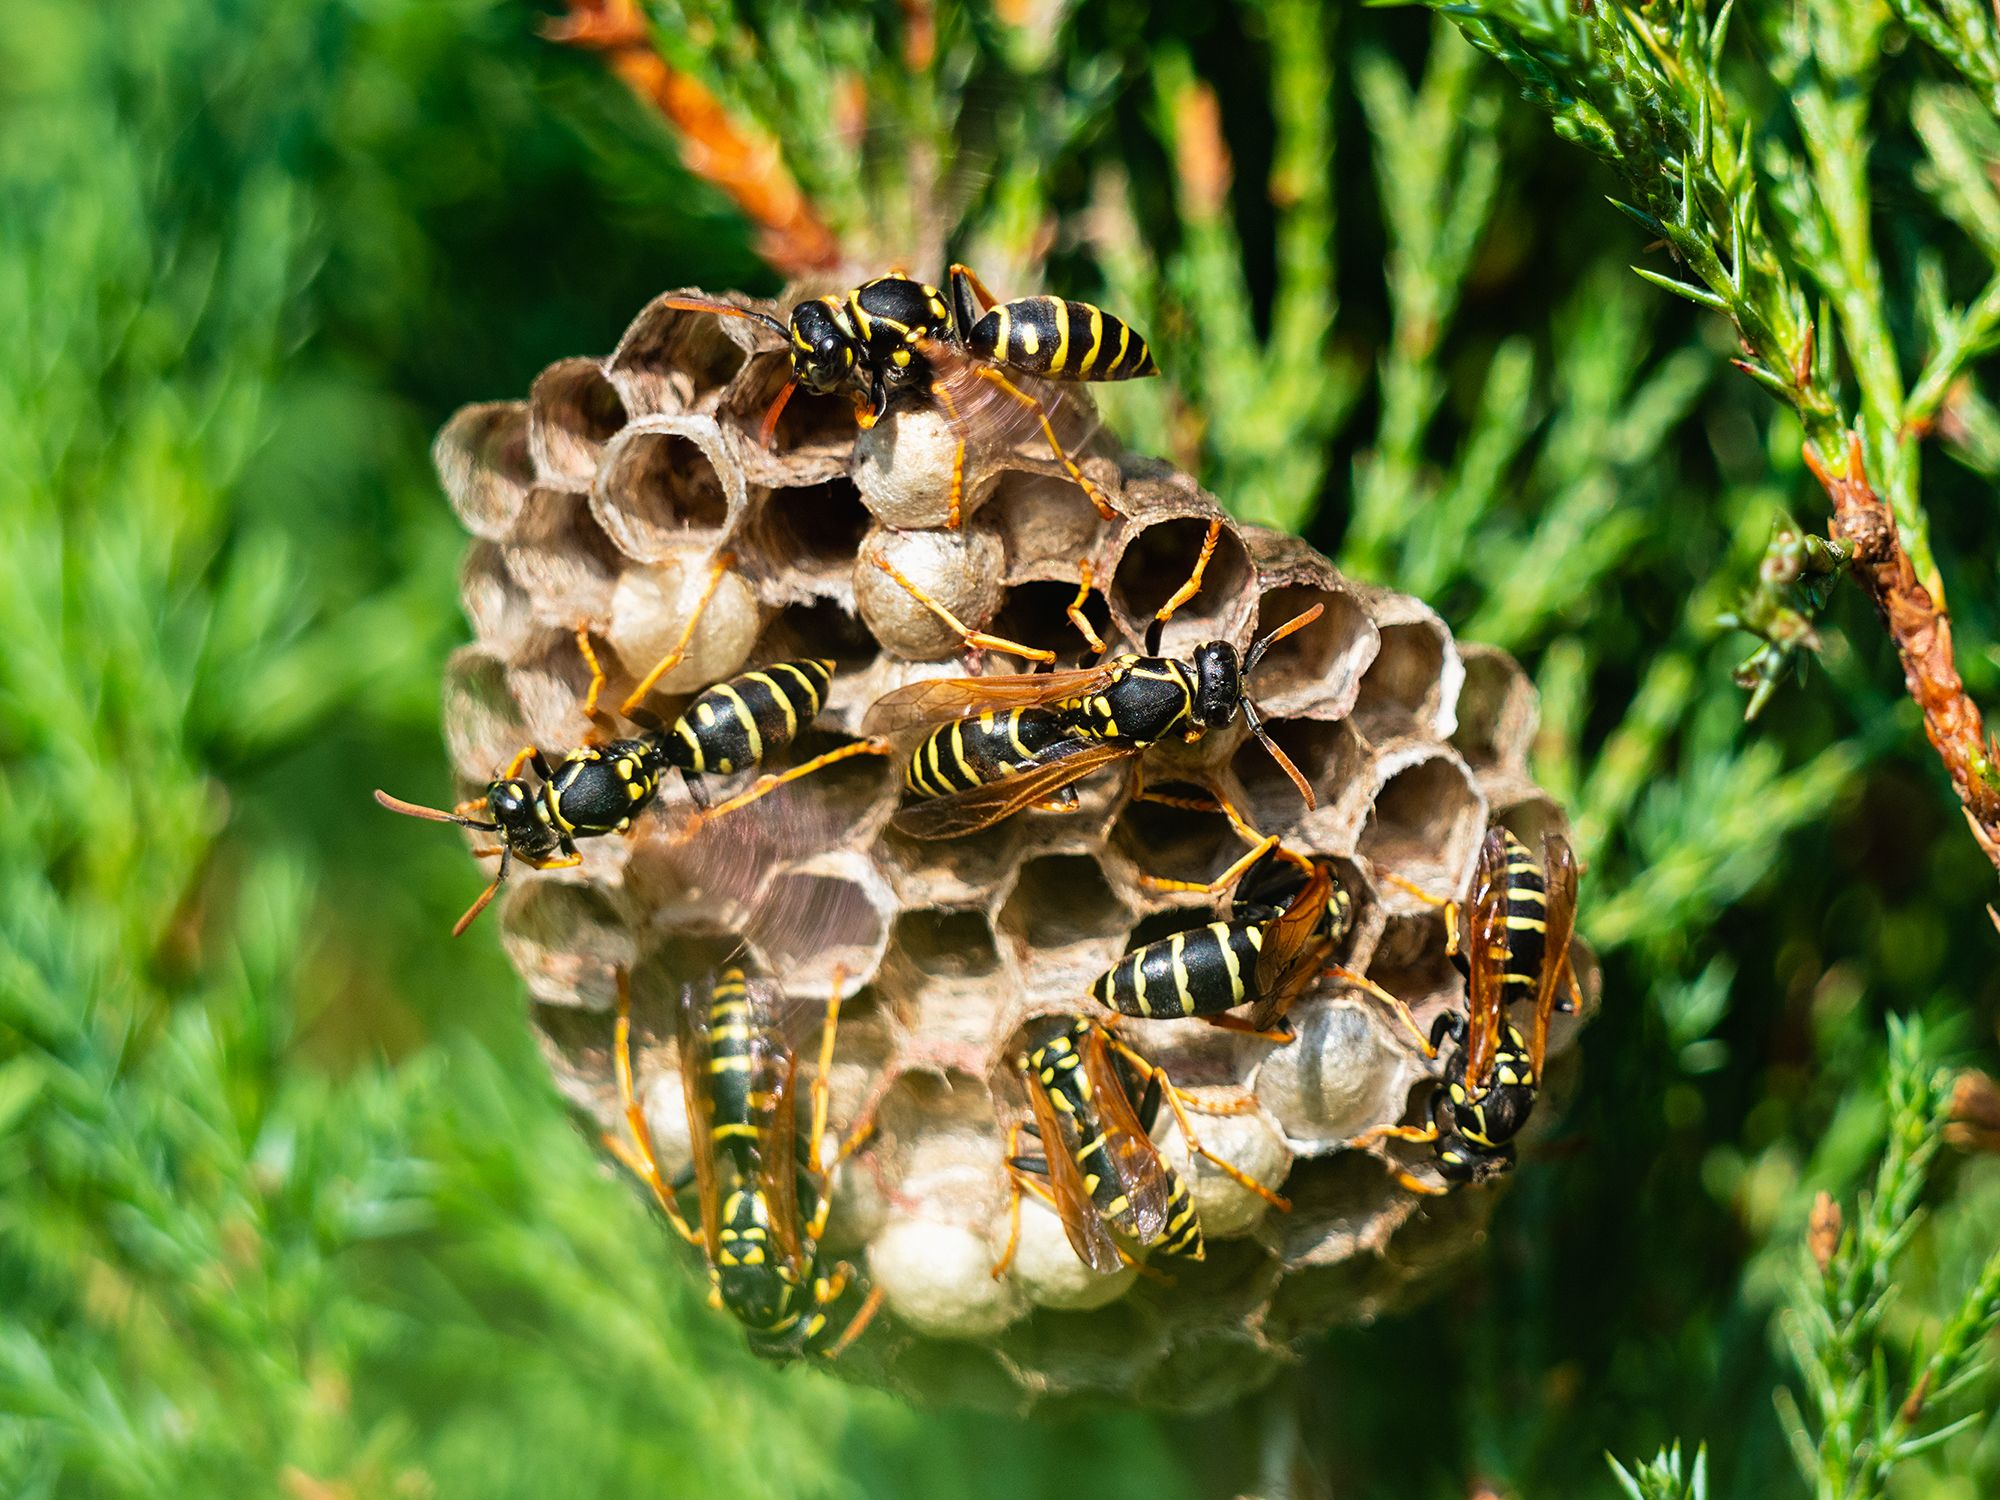 How To Get Rid Of Wasps Home Remedies For Wasp Removal